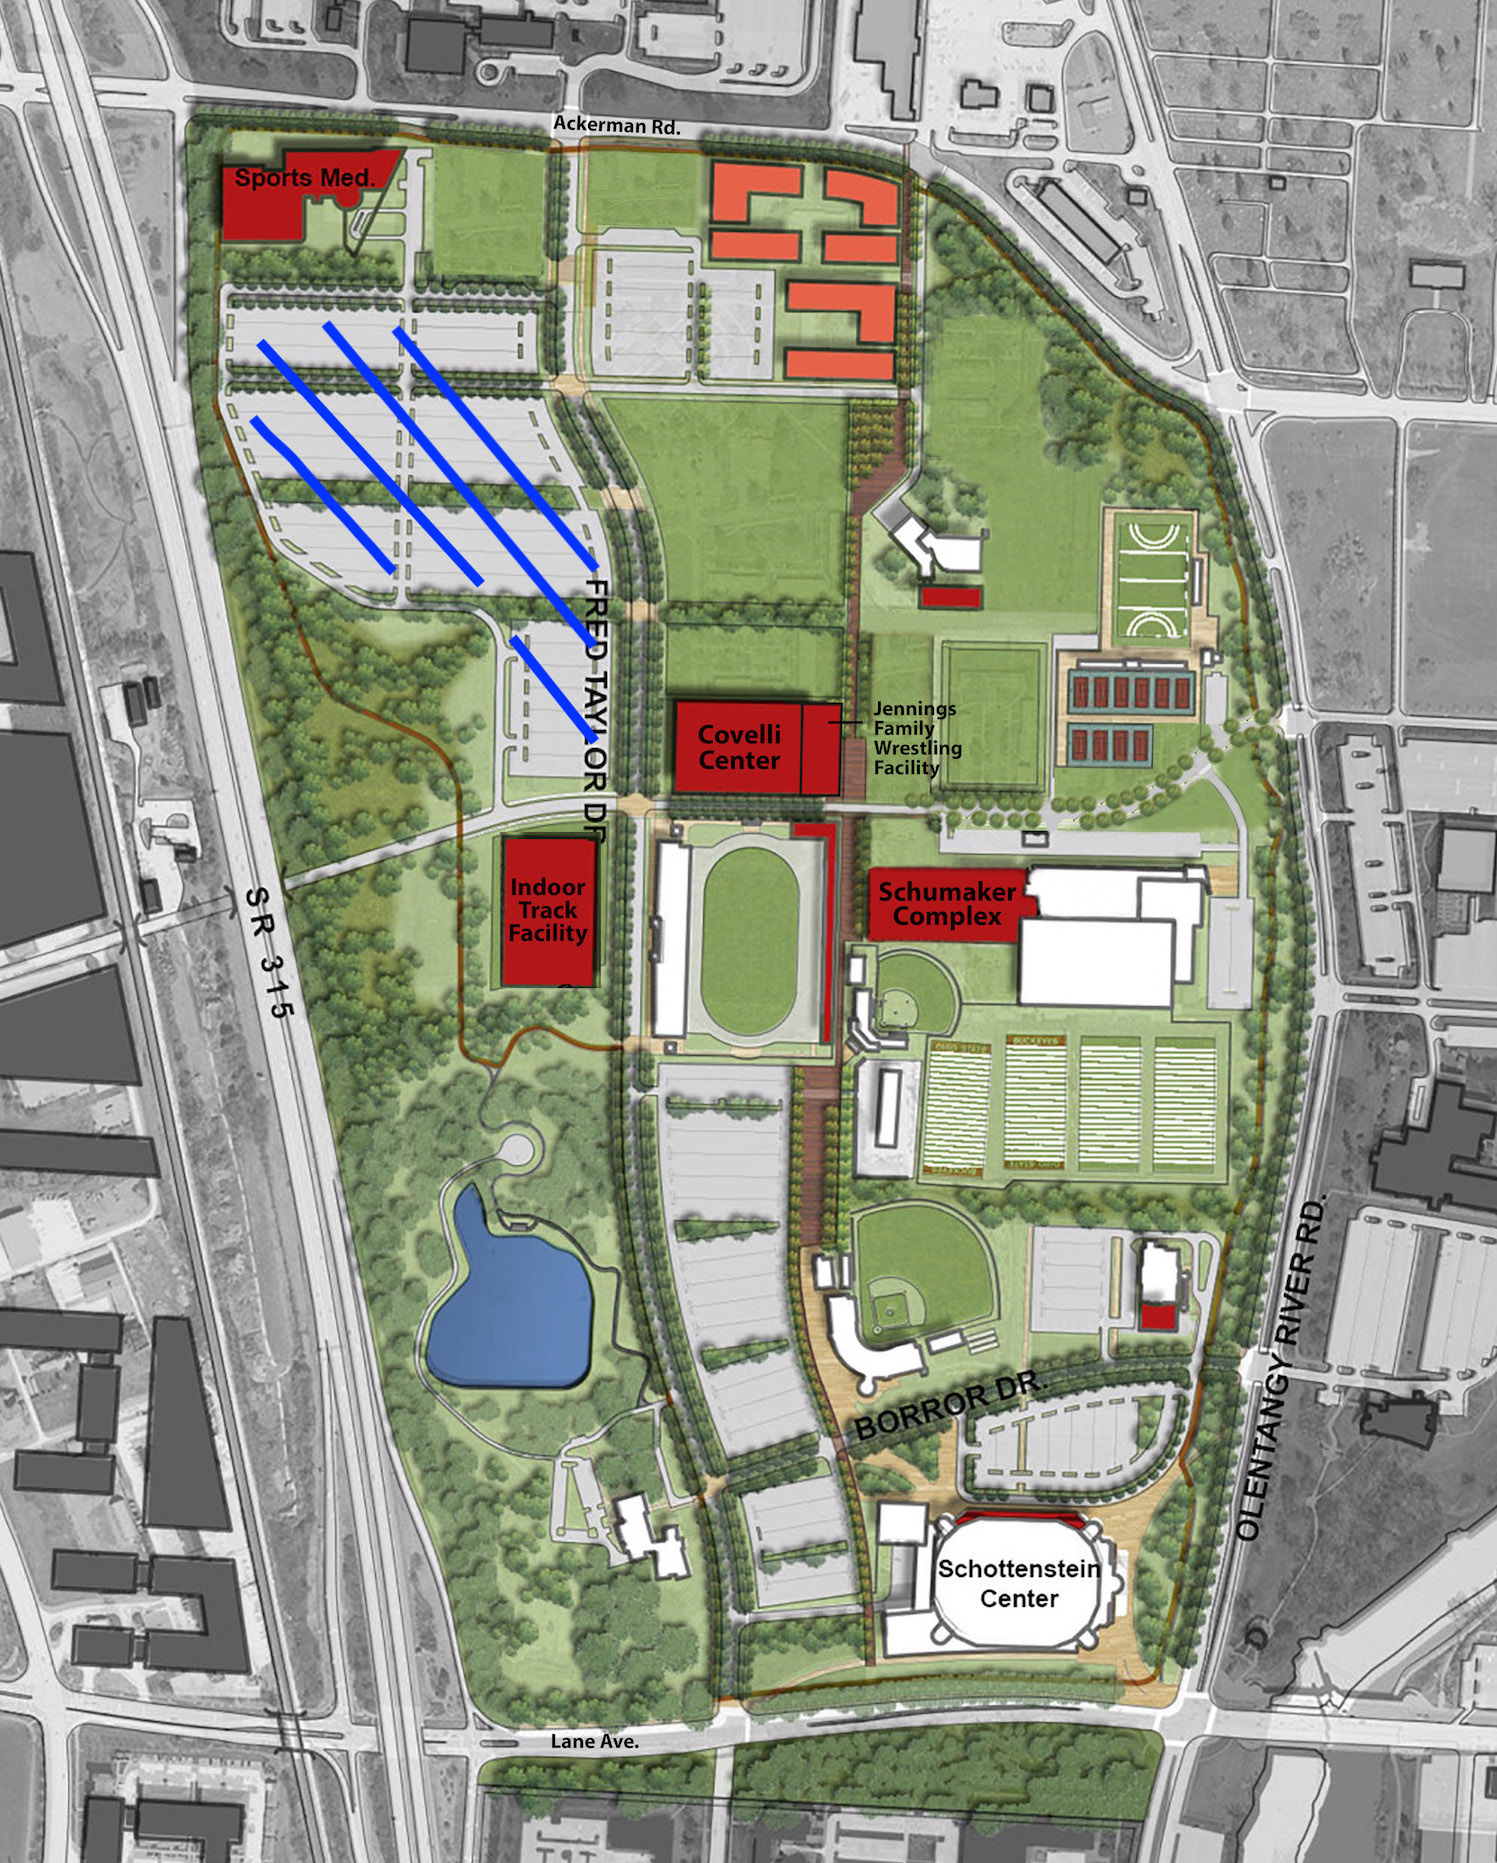 Parking Lot for Stieber Elite Wrestling Academy is highlighted in BLUE